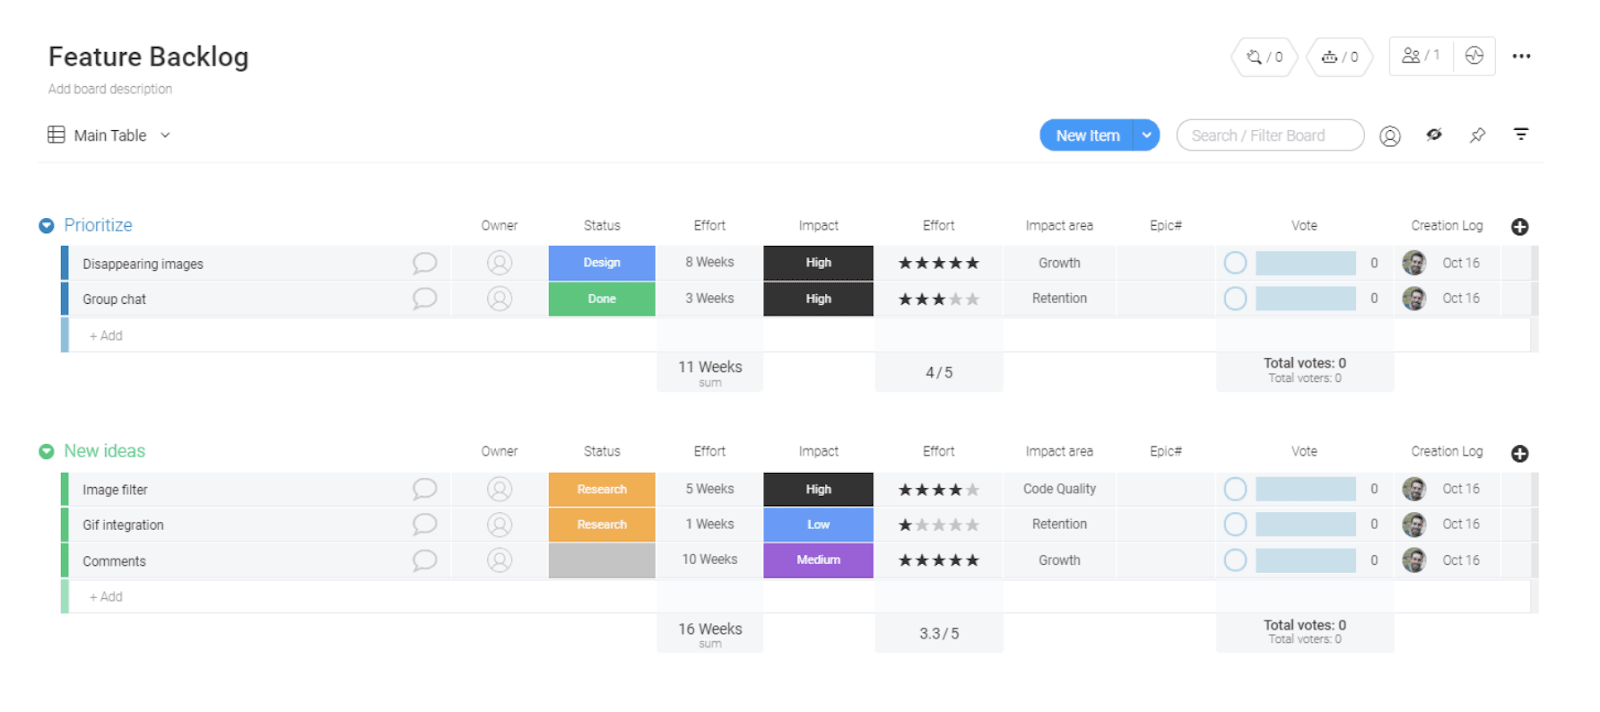 The feature backlog template is an essential list the product manager uses to effectively track the running list of features the stakeholder group wants.